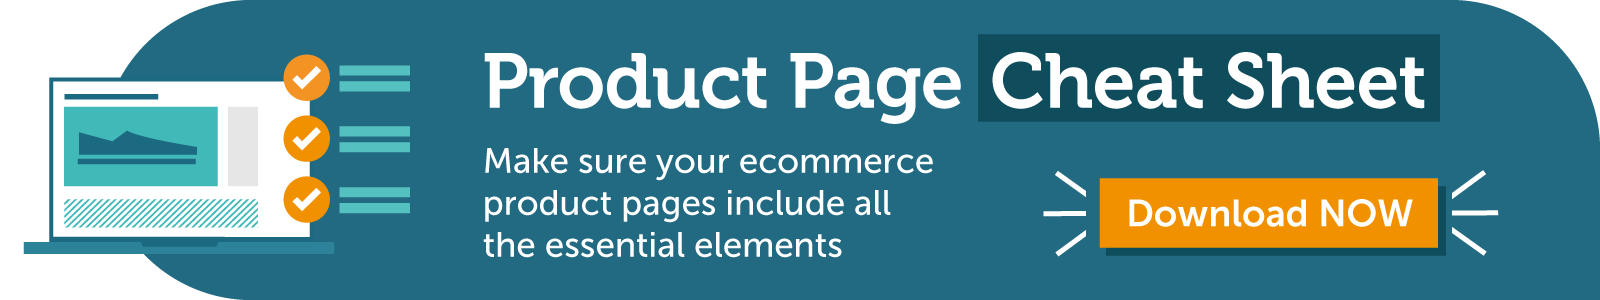 Download the Product Page Cheat Sheet